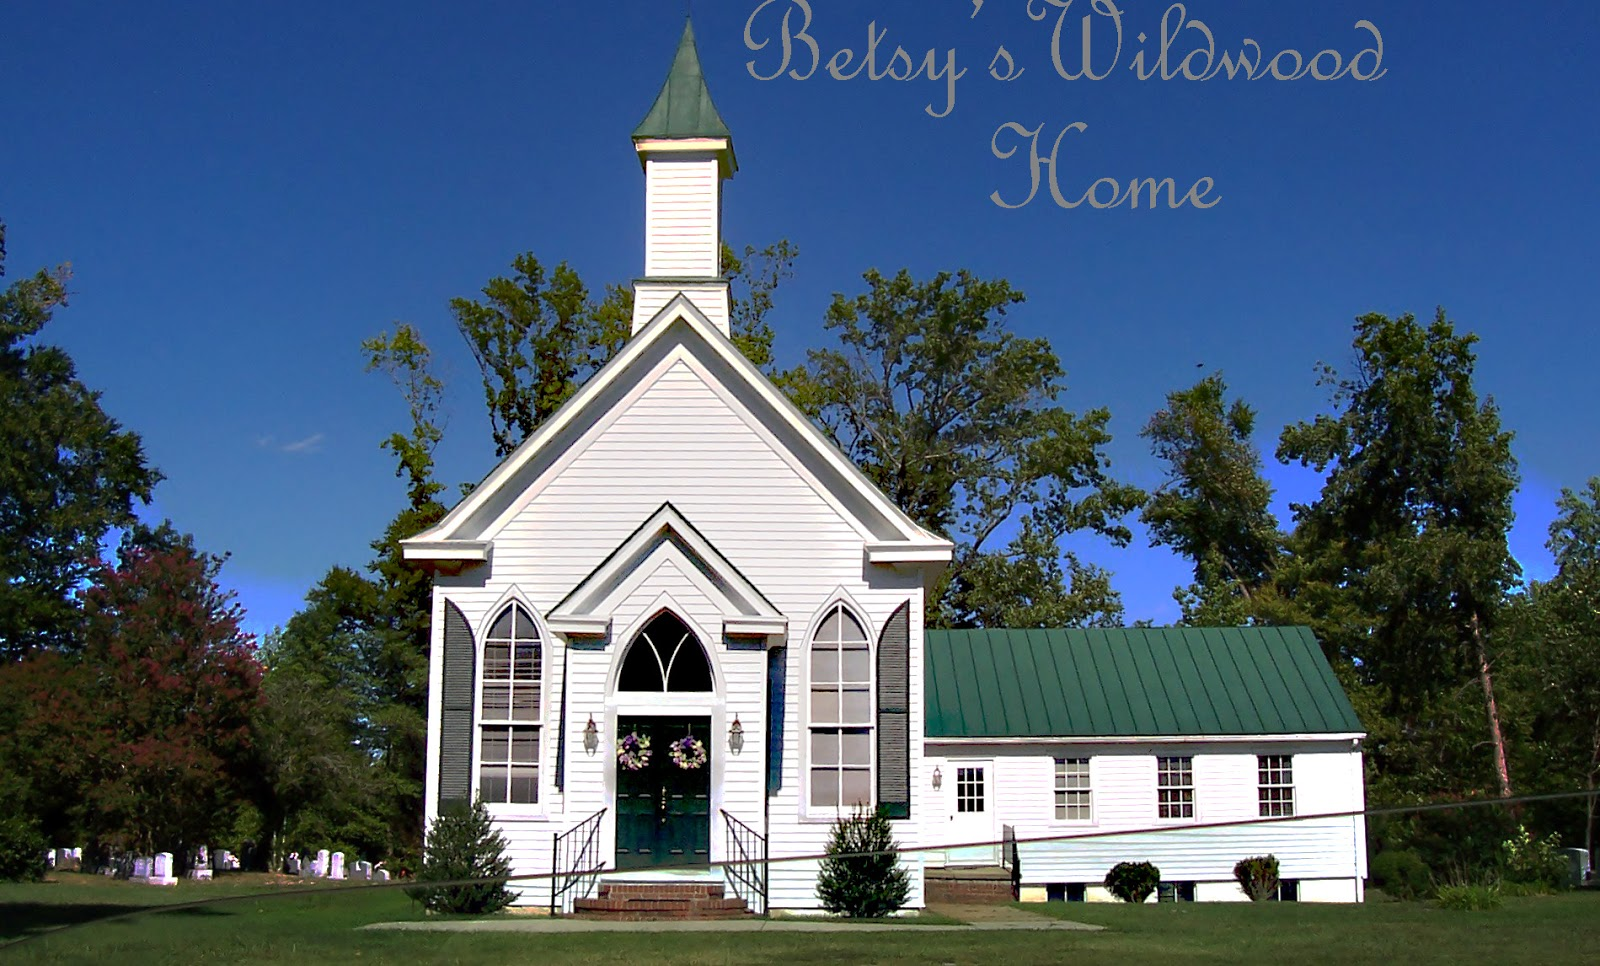 A Pretty Church I Stopped To Take Look At In King William County Virginia